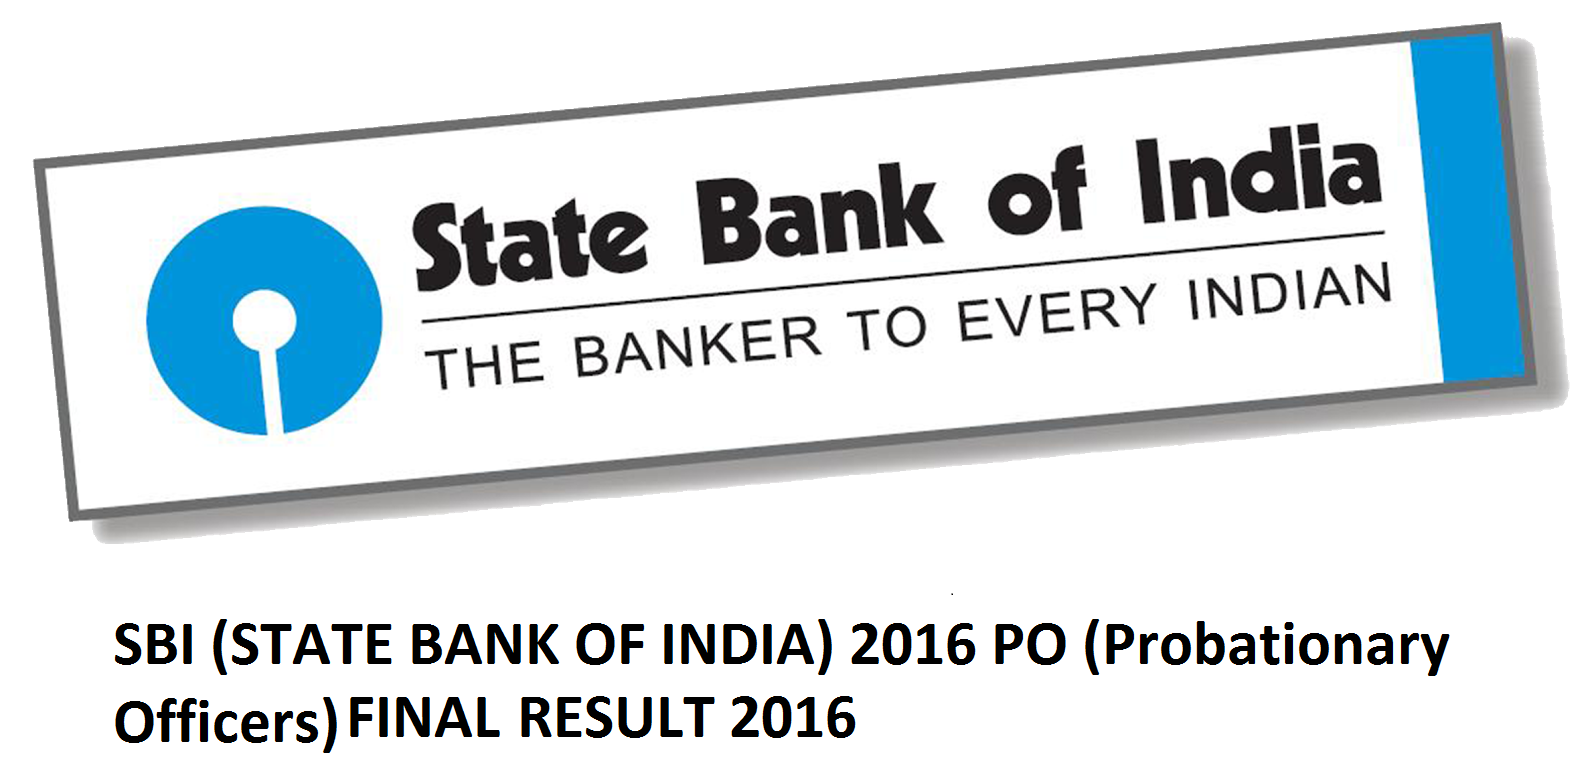 Click here for State Bank of India- Probationary Officers Exam Result 2016 - SBI PO Results